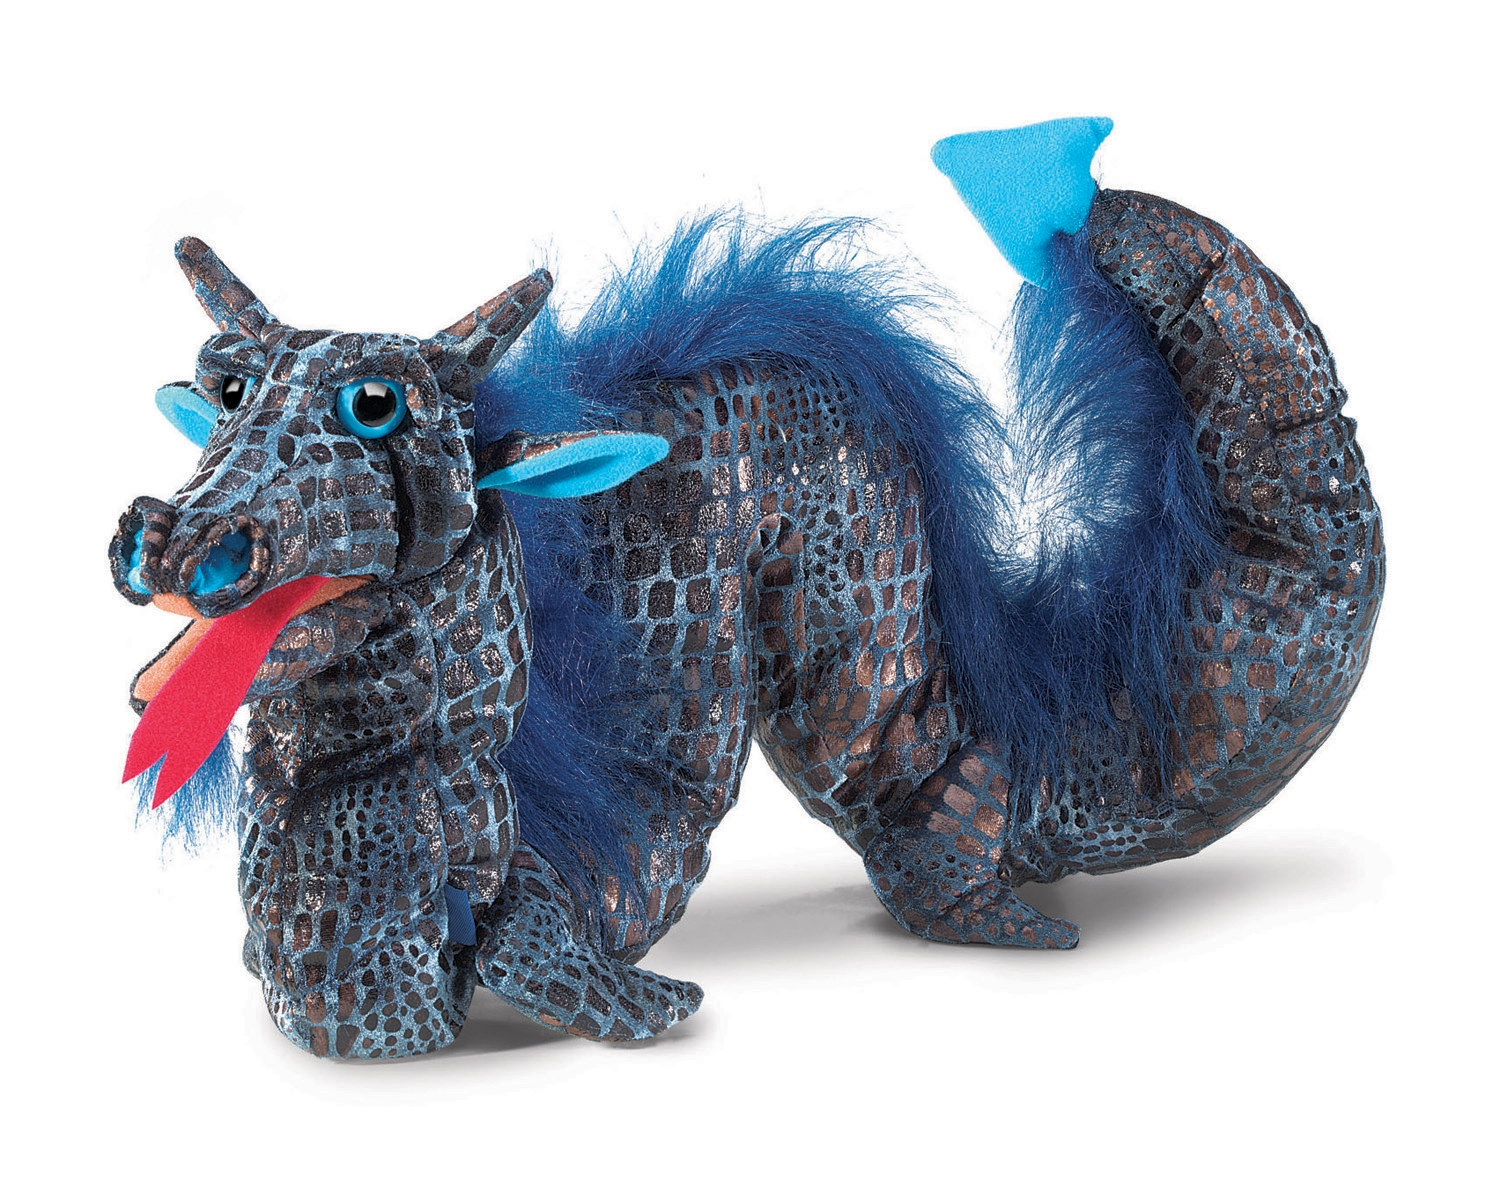 Blue Sea Serpent Dragon Hand Puppet by Folkmanis 3049